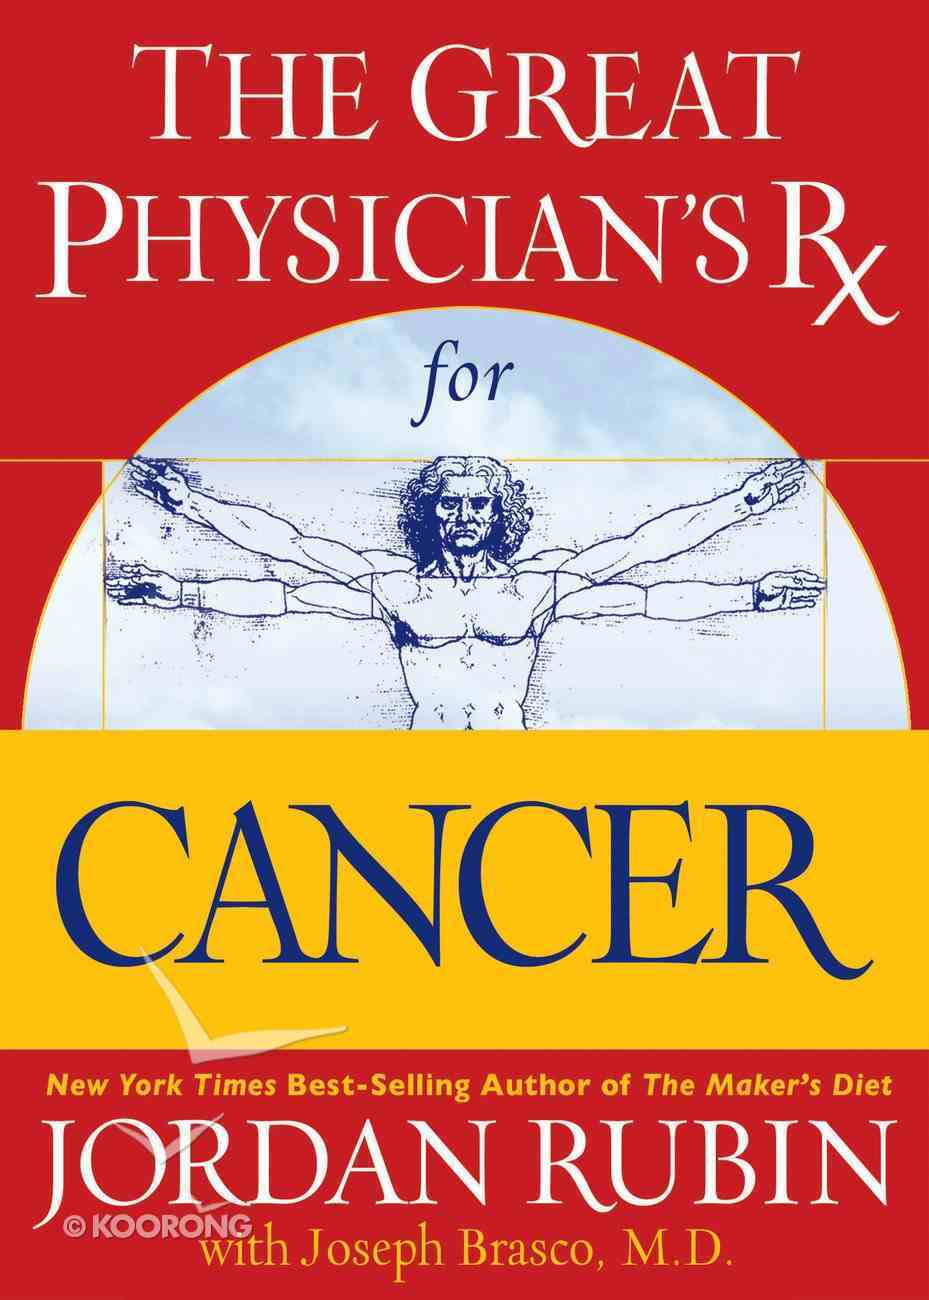 The Great Physician's Rx For Cancer (Prescription) eBook